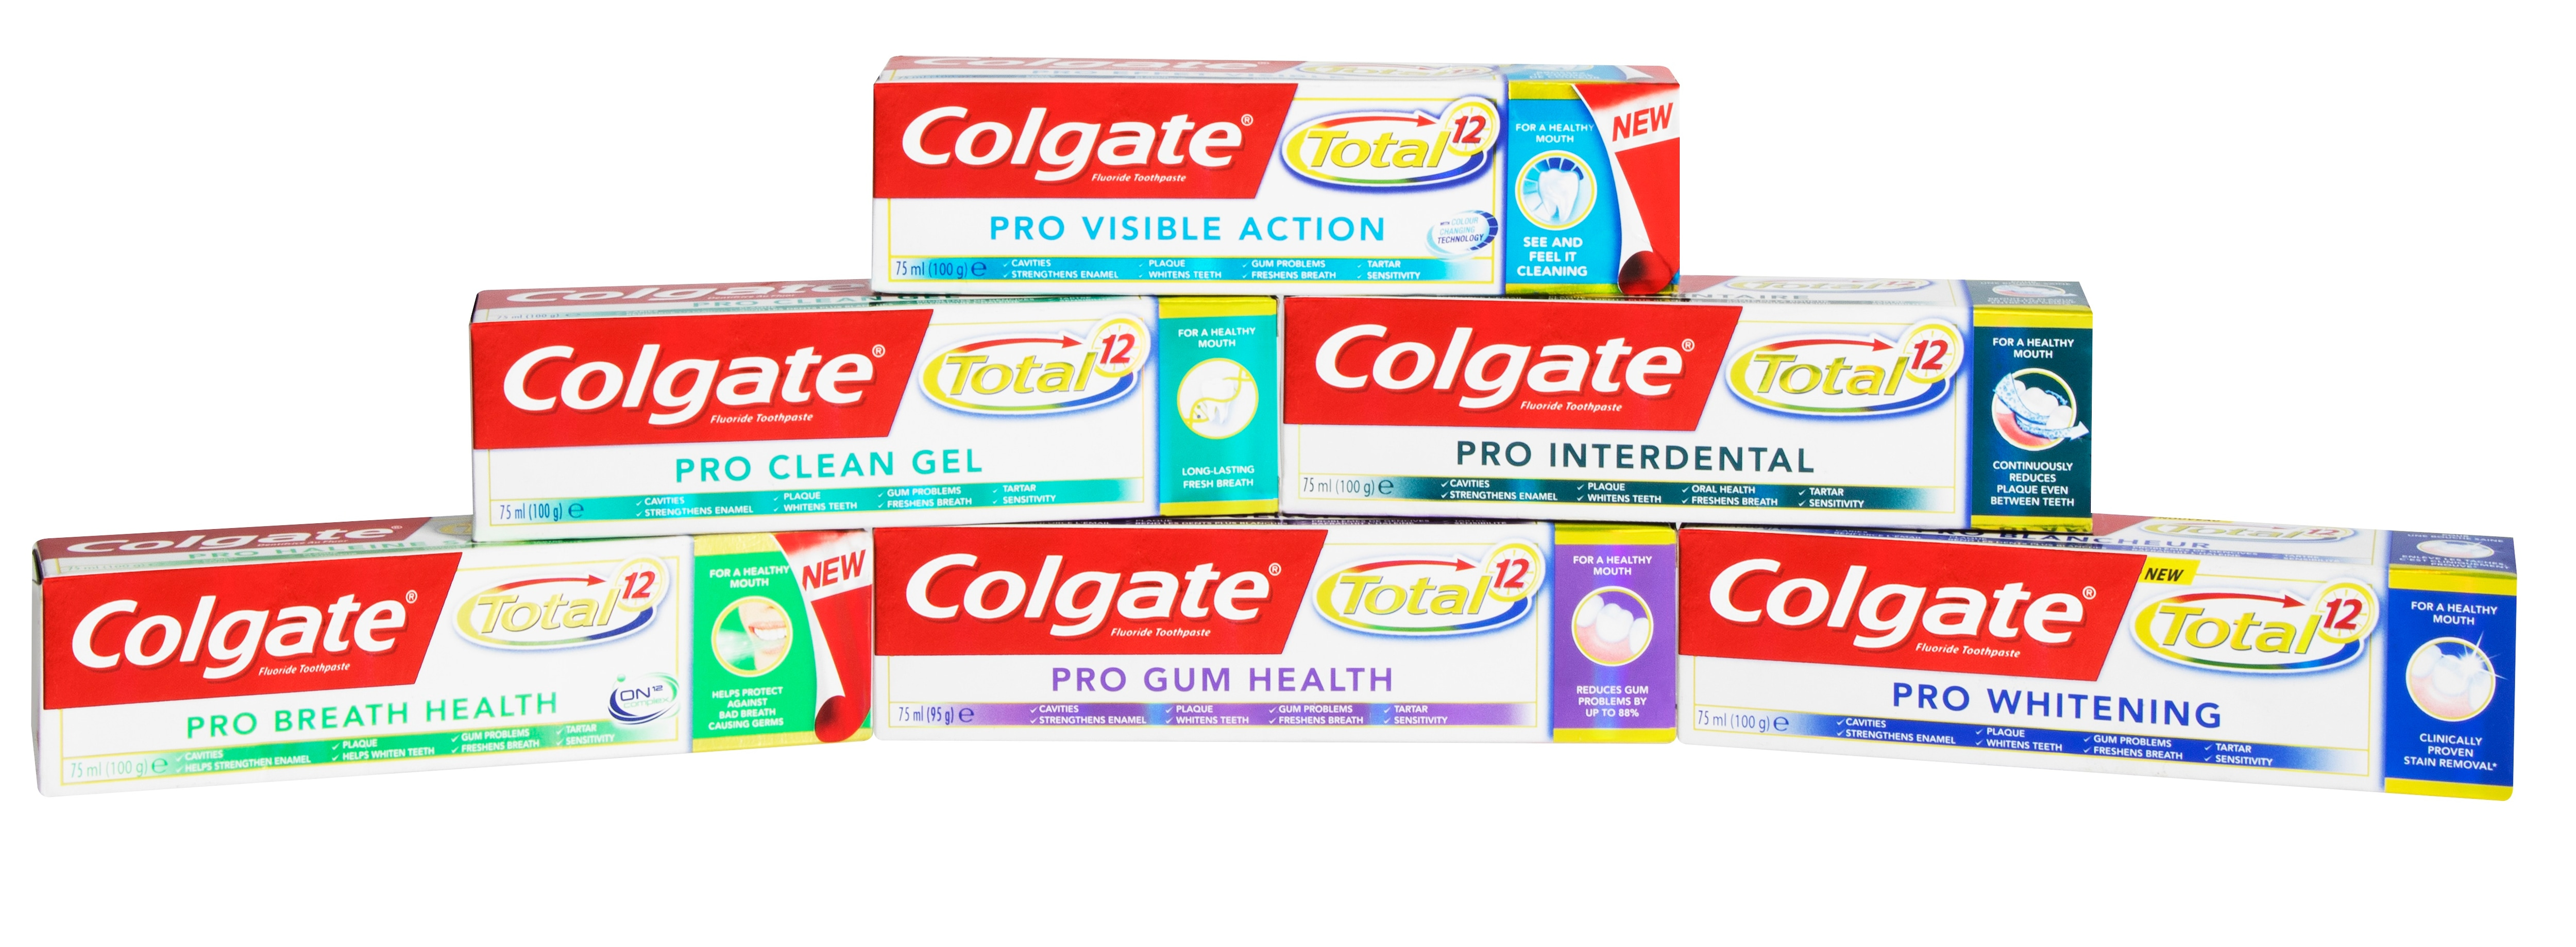 Explore Toothpaste products